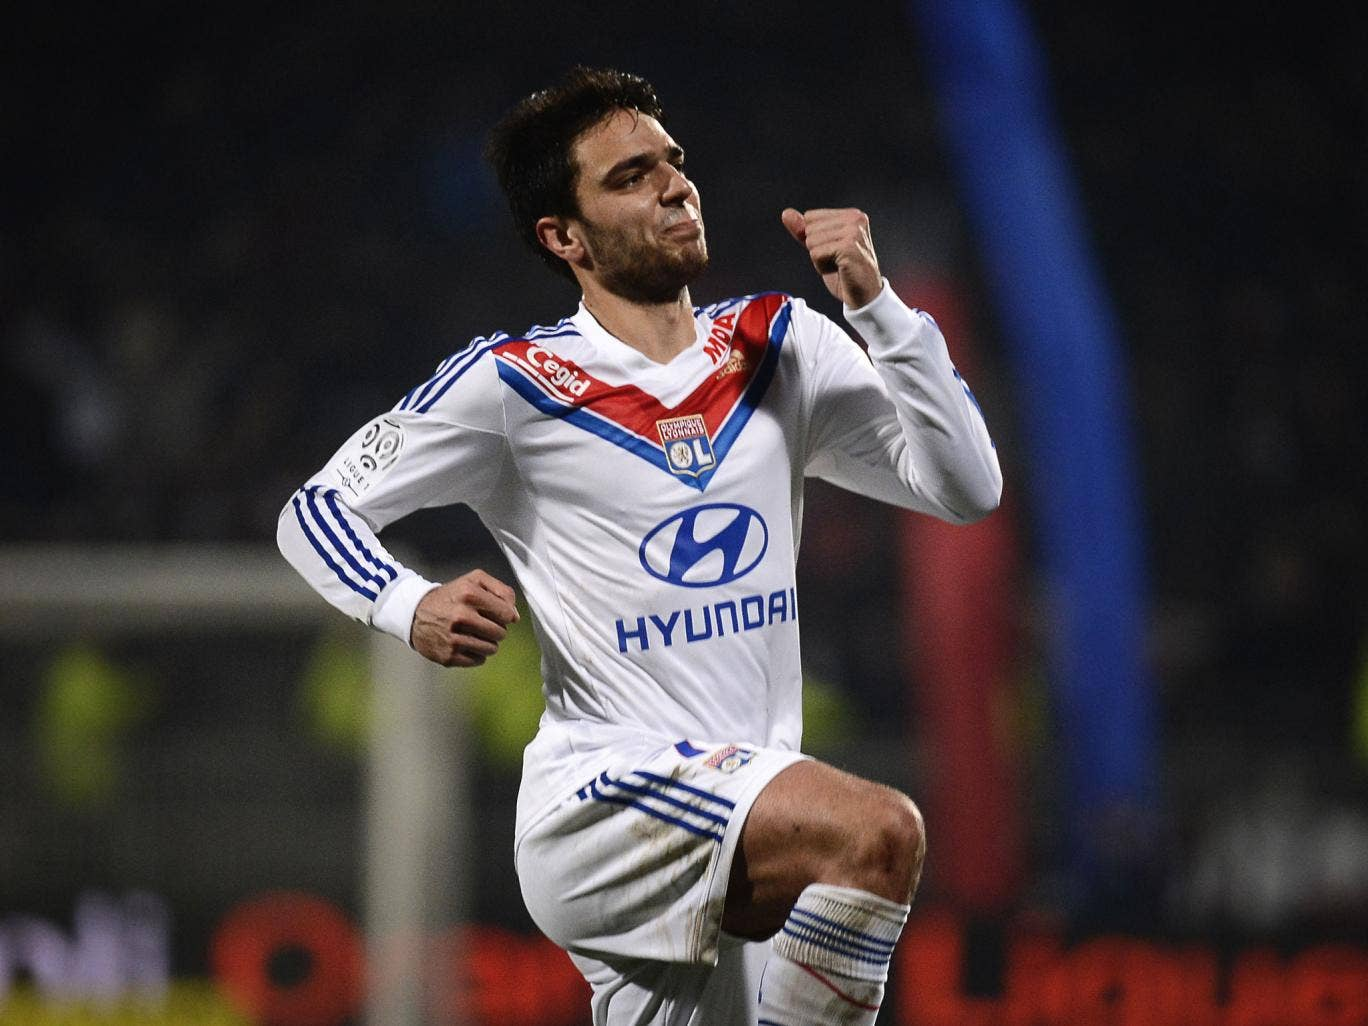 Clement Grenier could move to Newcastle to replace Yohan Cabaye after Newcastle made a reported £20m offer for the Lyon Frenchman